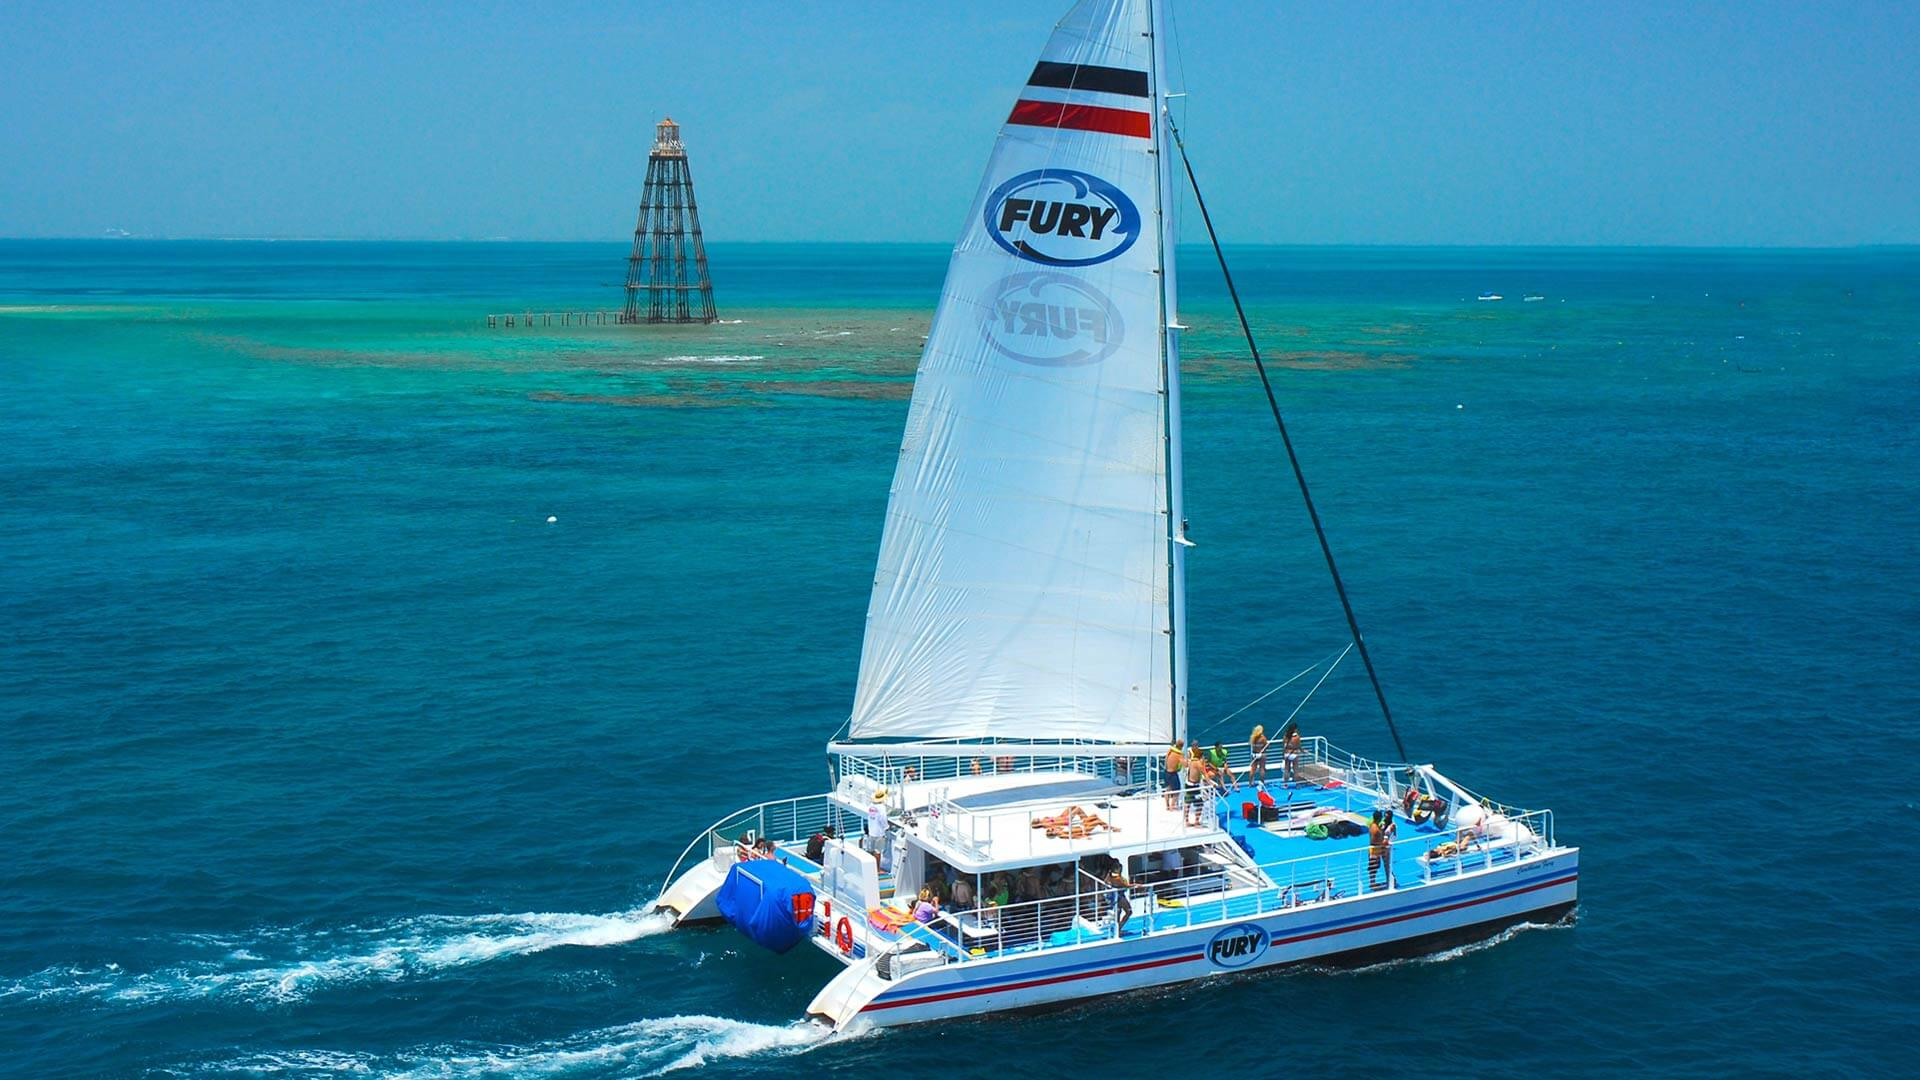 Fury Water Adventures Catamaran in Key West